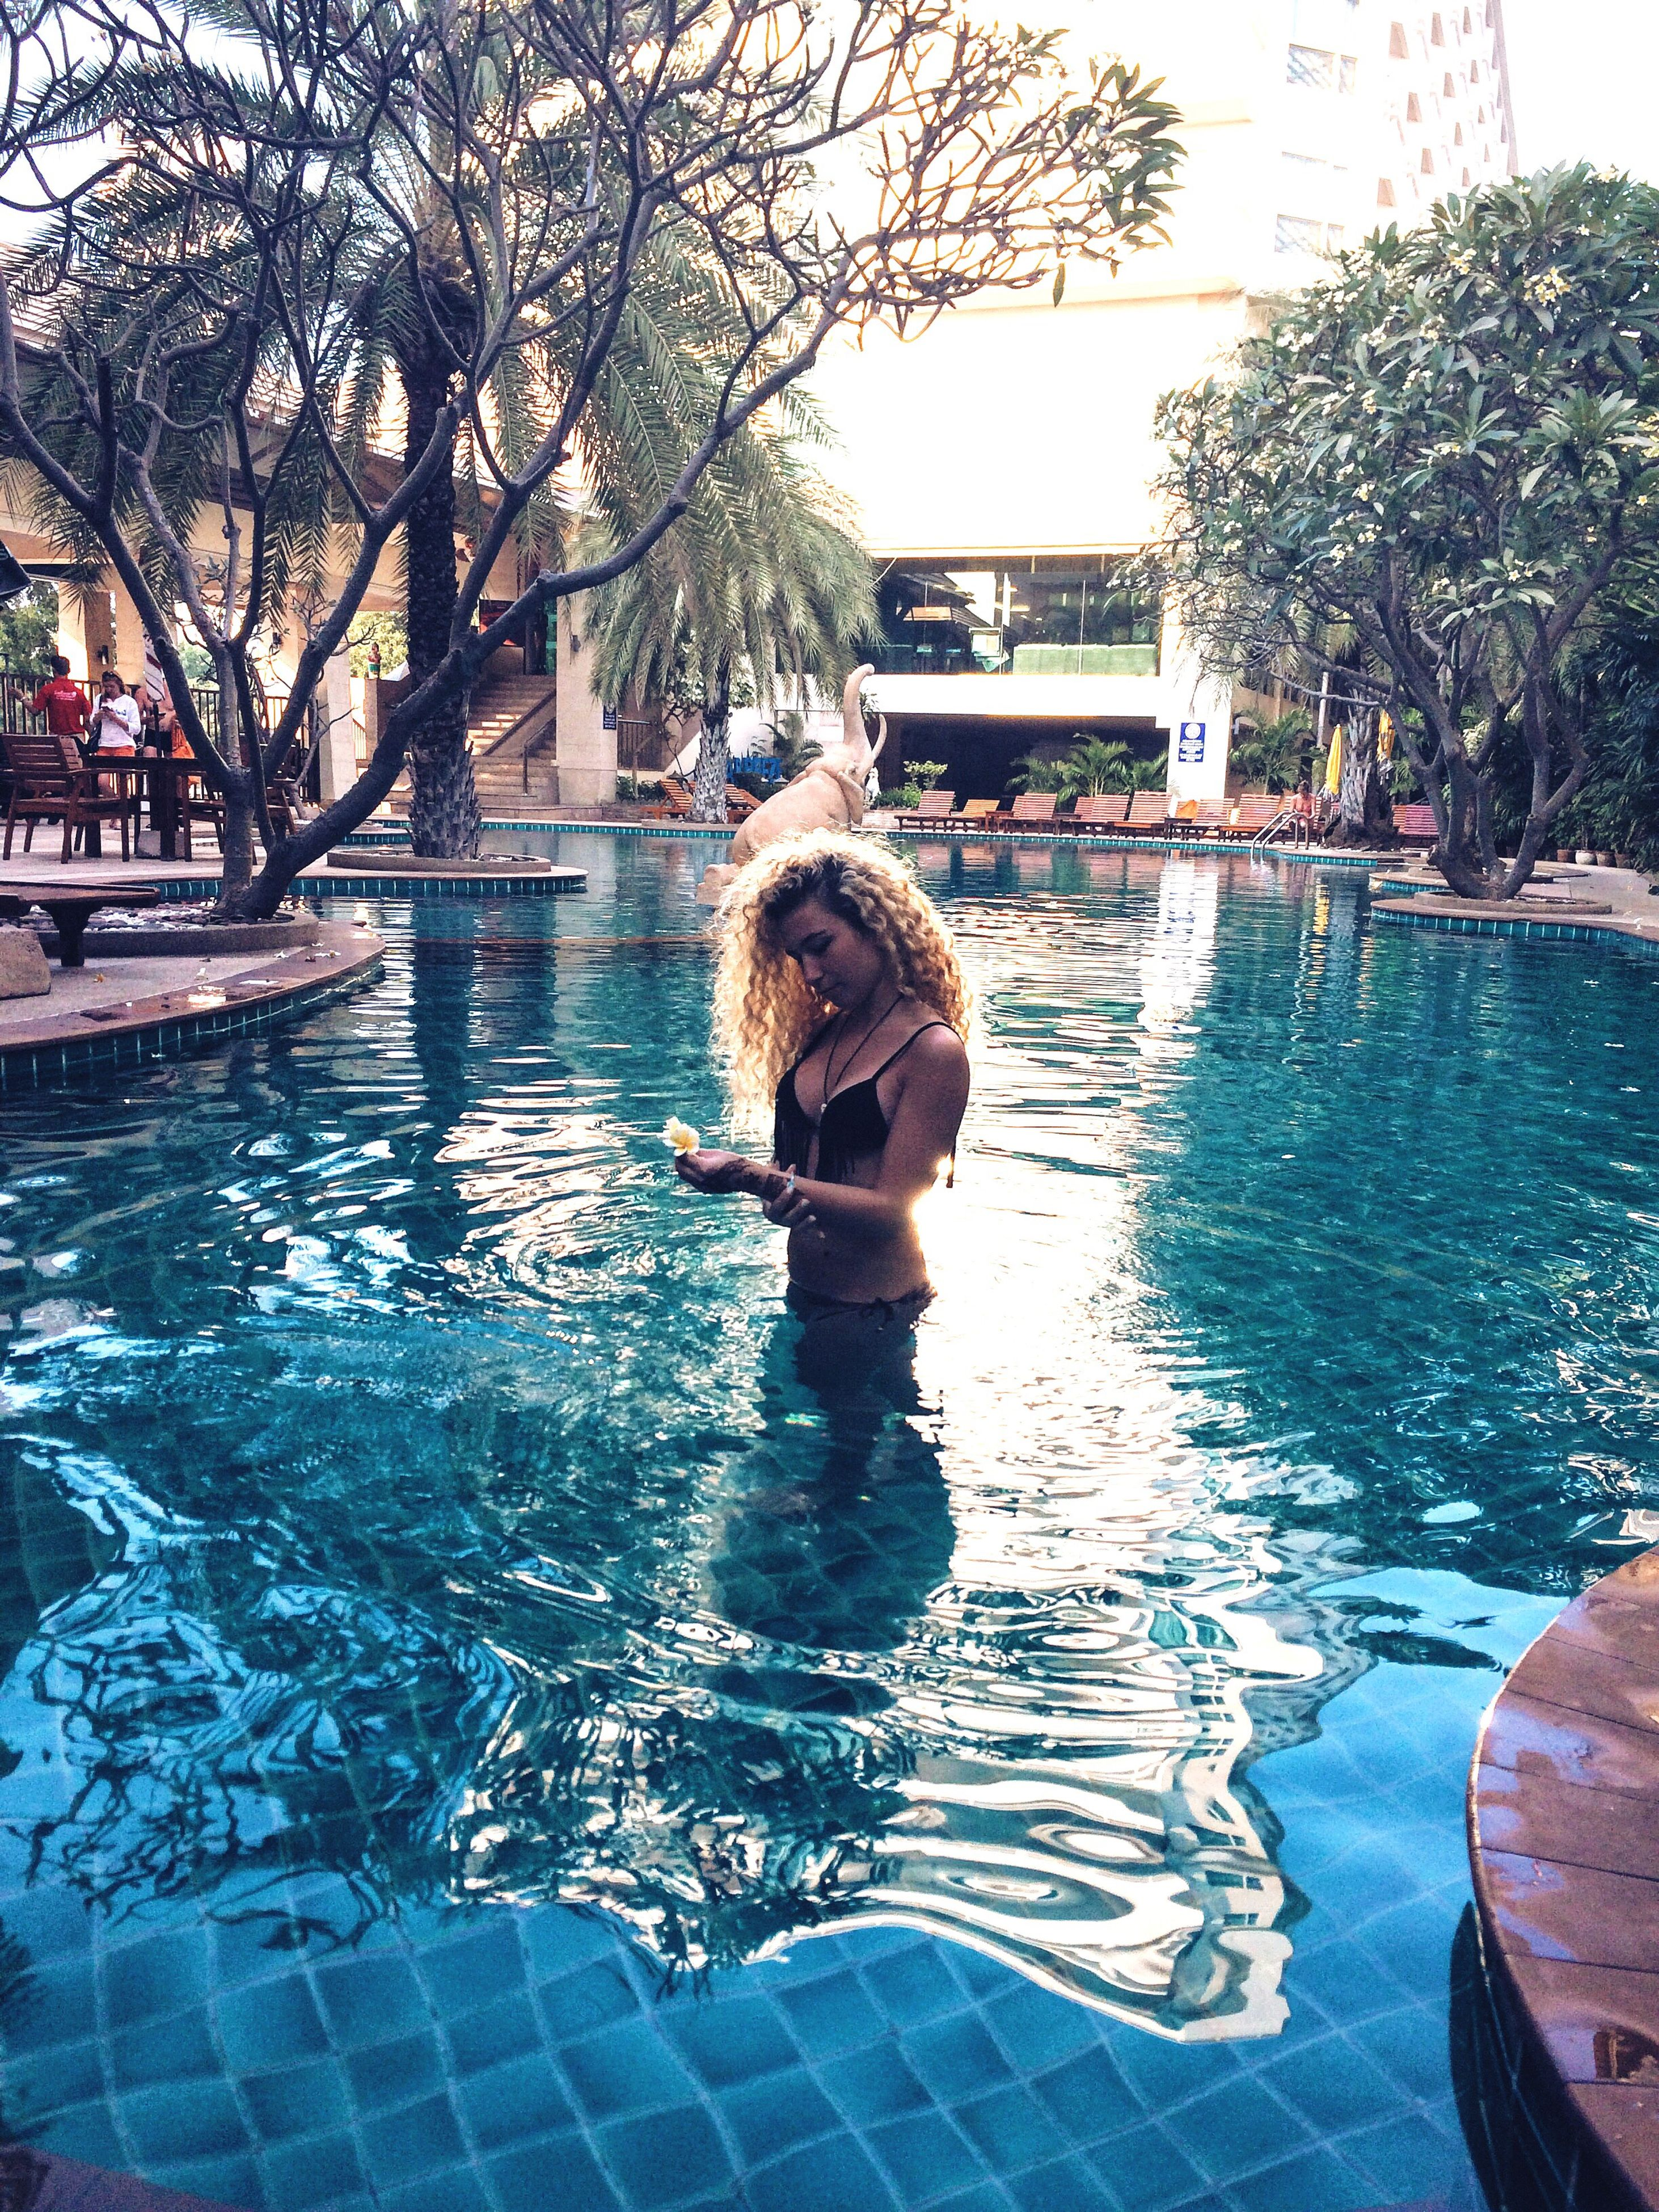 water, tree, lifestyles, built structure, leisure activity, building exterior, architecture, full length, swimming pool, reflection, rear view, day, childhood, outdoors, casual clothing, river, standing, swimming